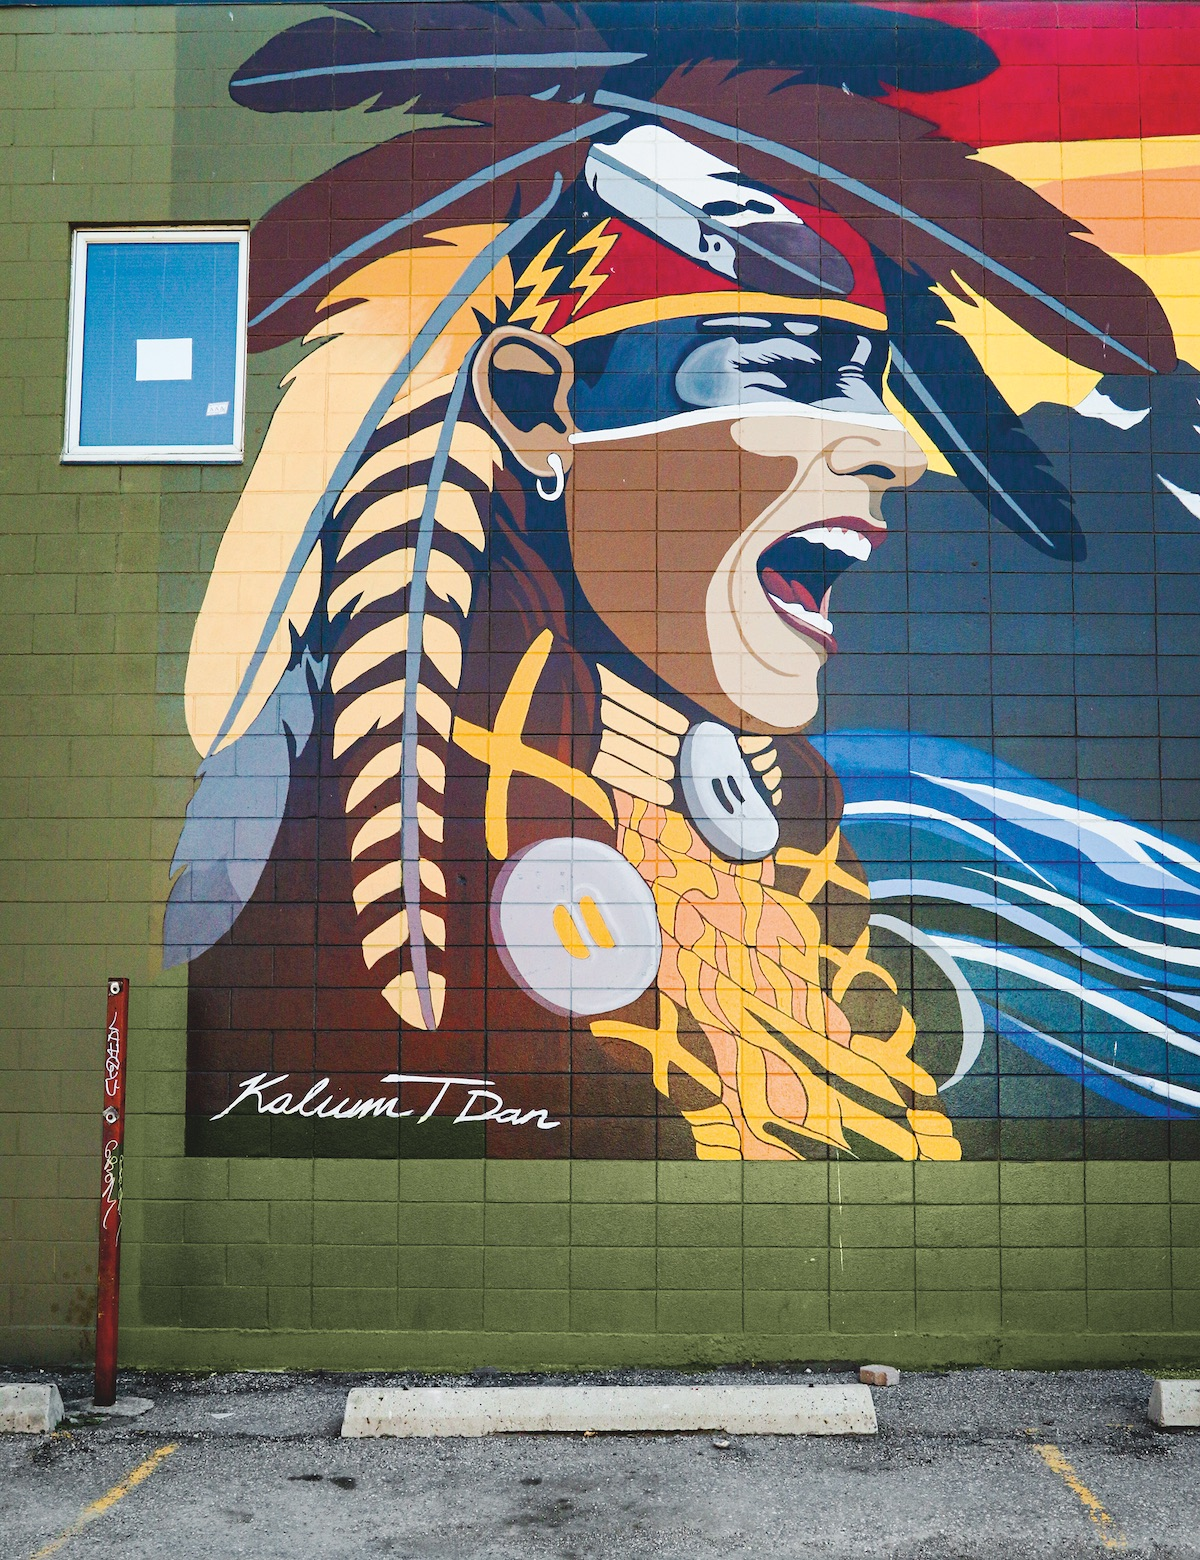 Sunset Songs, by First Nations artist Kalum Teke Dan, is featured in the Beltline Urban Murals Project (BUMP). Photo by Christina Ryan, courtesy Emons Verlag GmbH